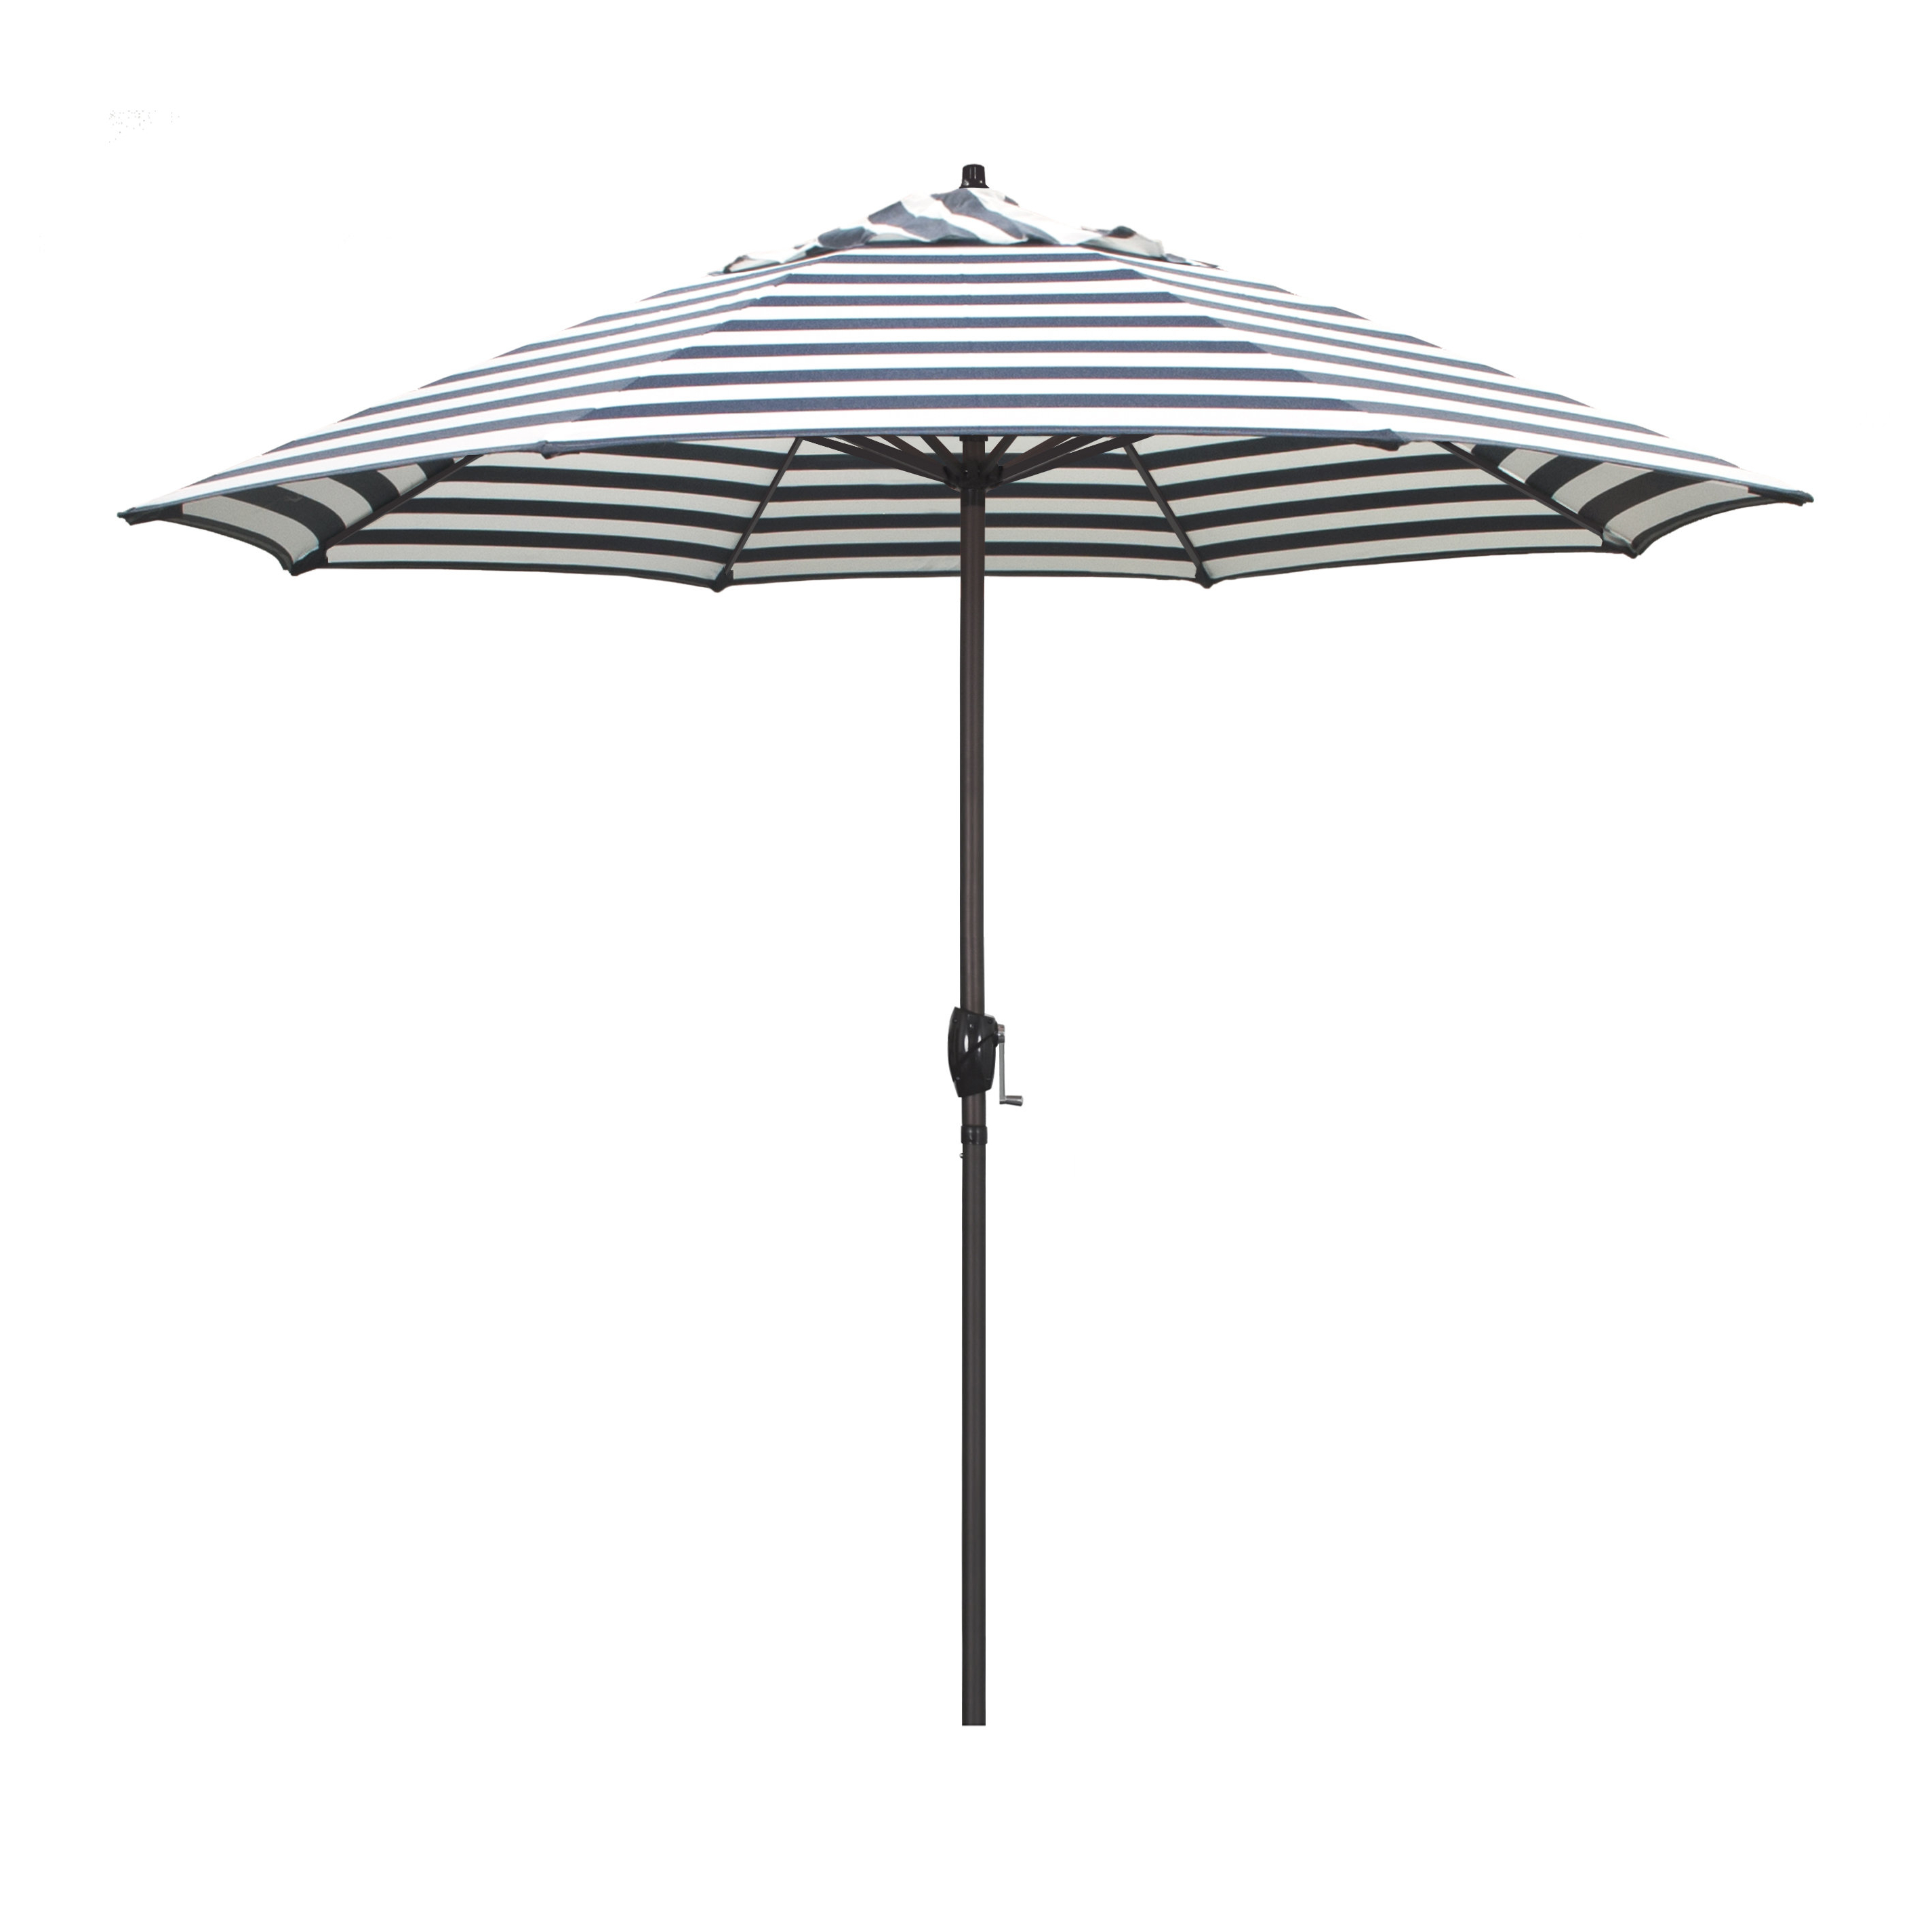 Cardine 9' Market Umbrella For Widely Used Market Umbrellas (View 10 of 20)